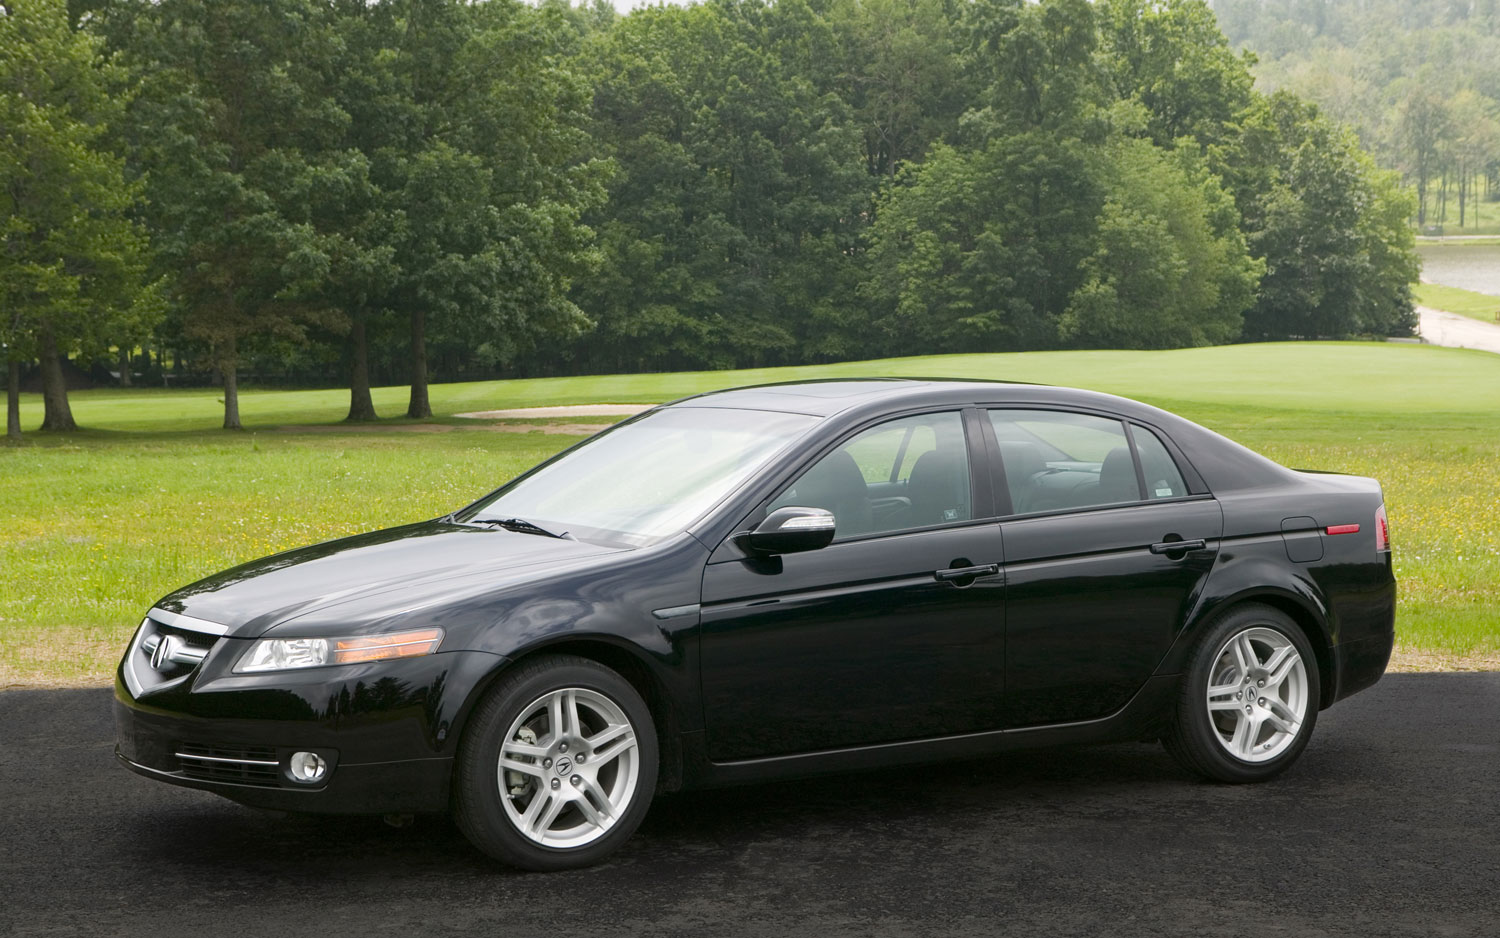 Recall Central: Power Steering Hose Issue in 2007-2008 Acura